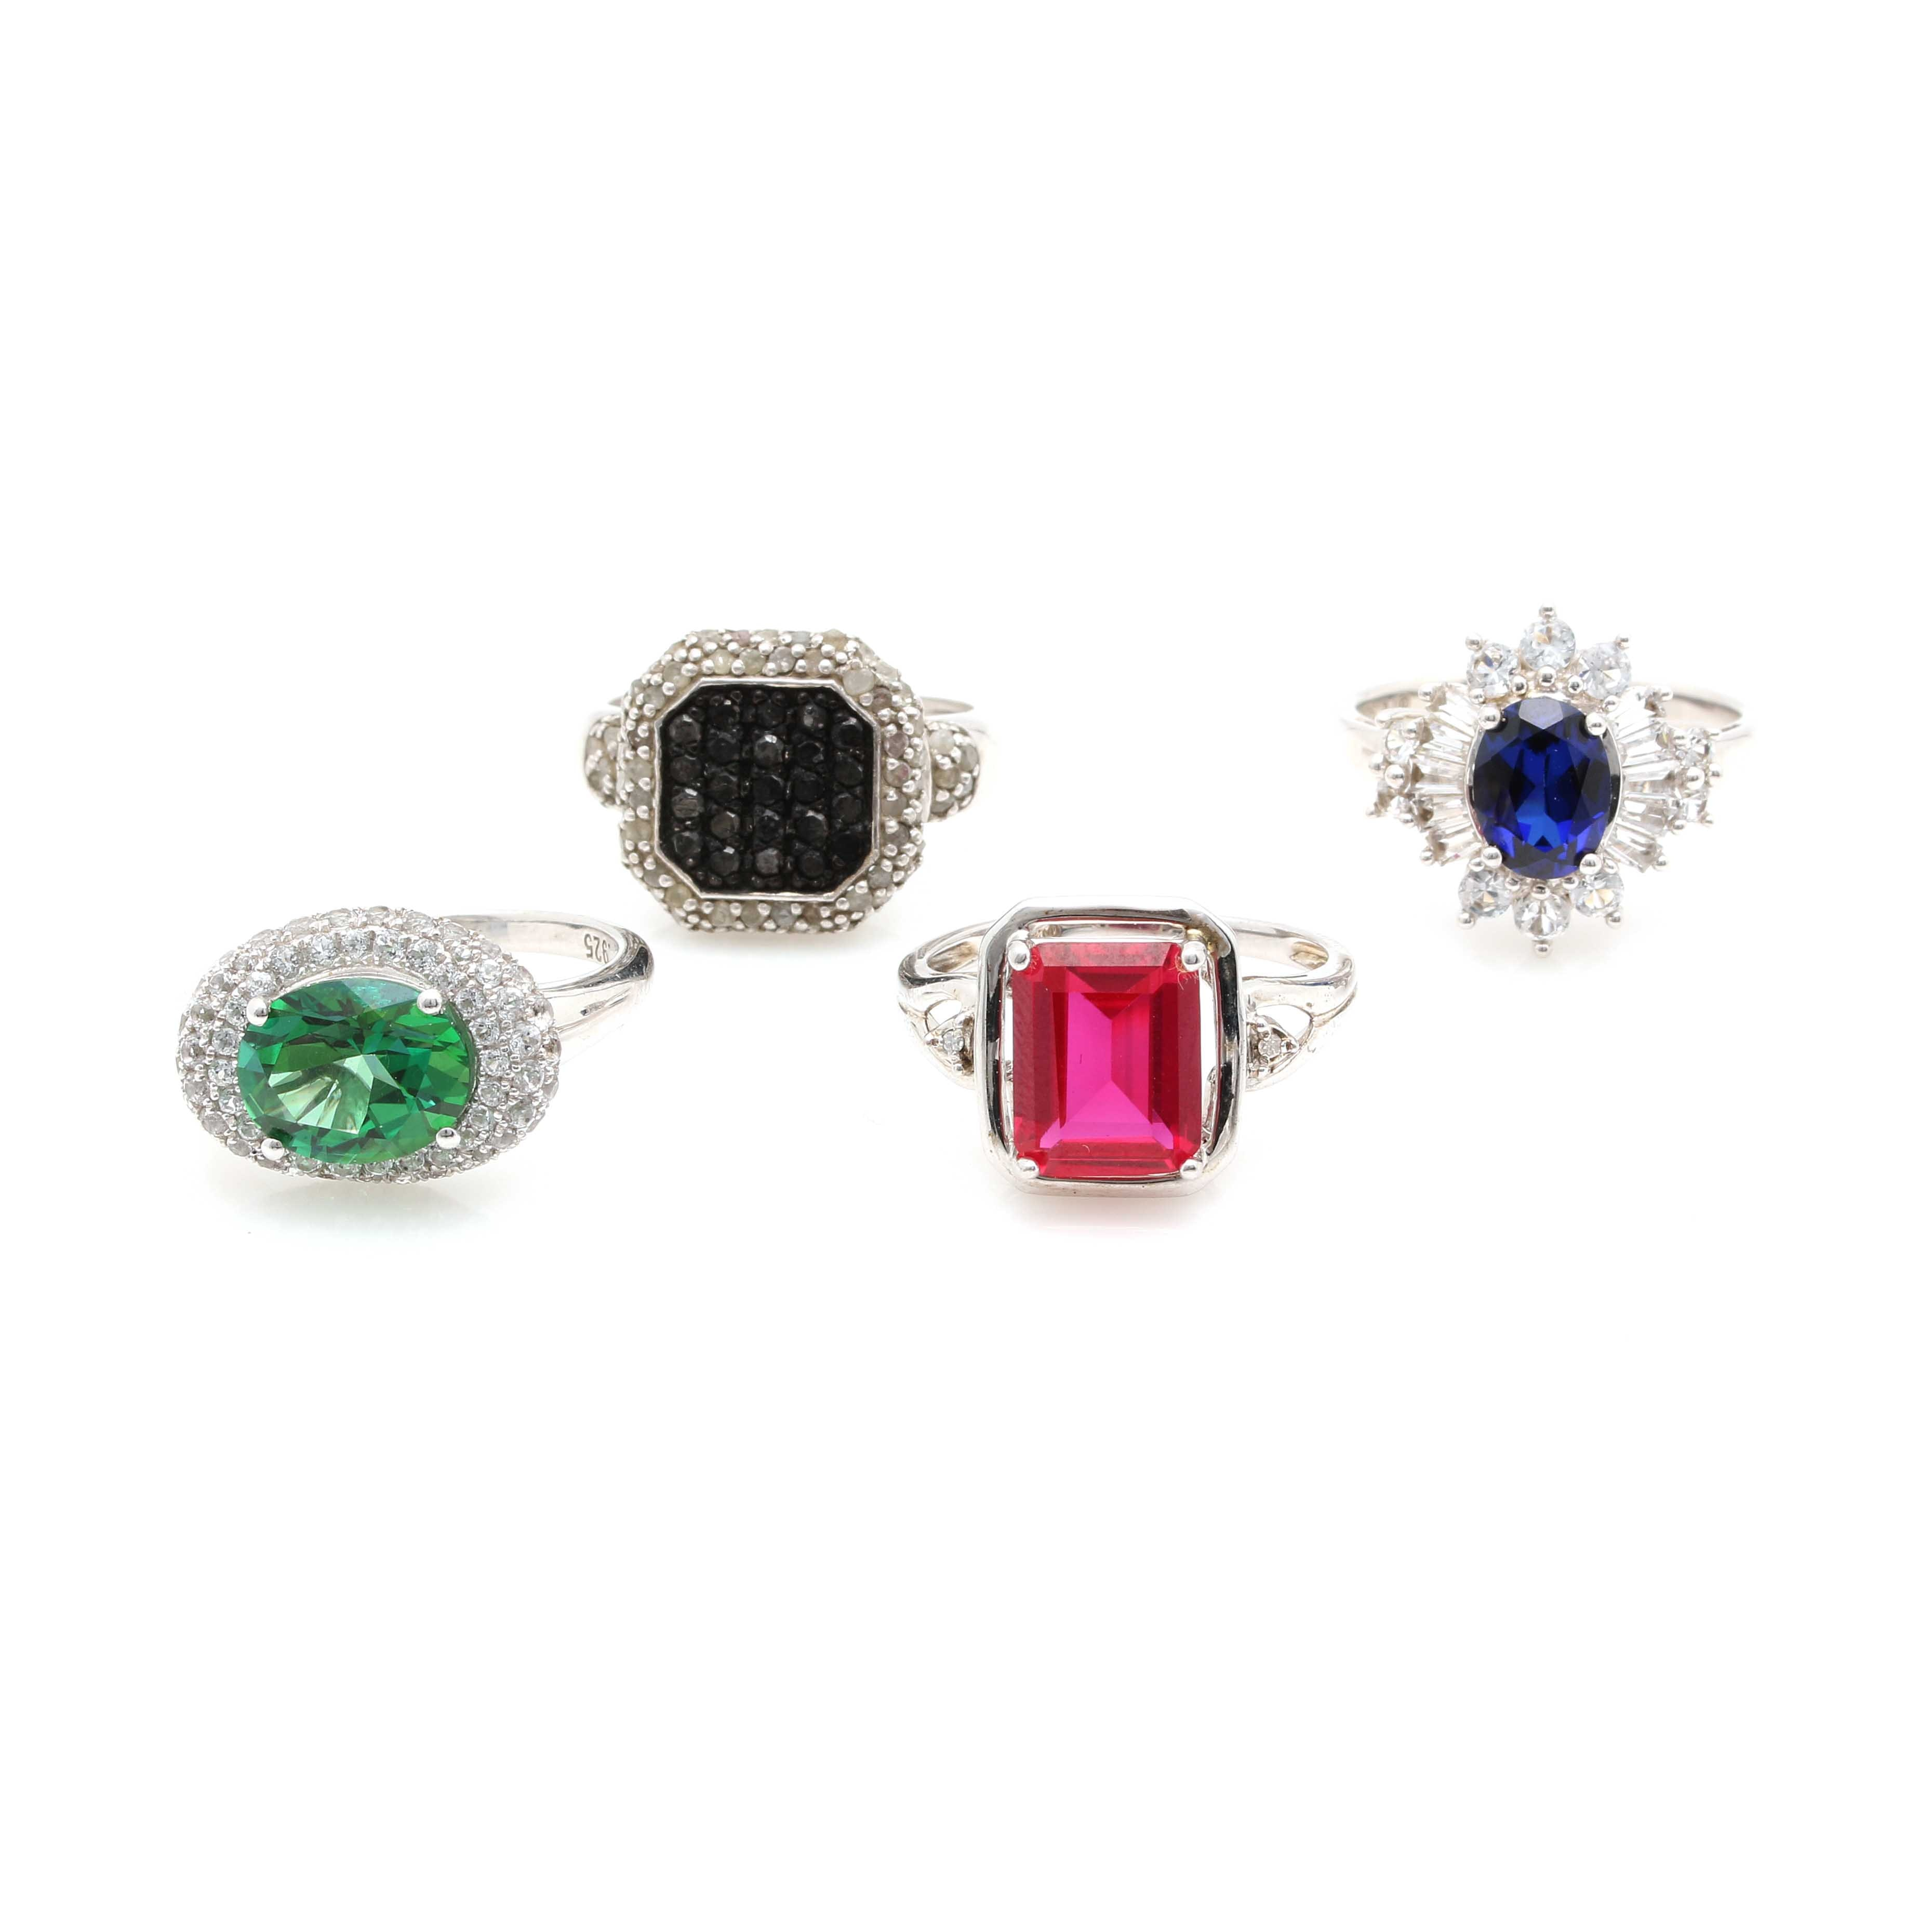 Sterling Silver Gemstone Ring Assortment Featuring Alwand Vahan